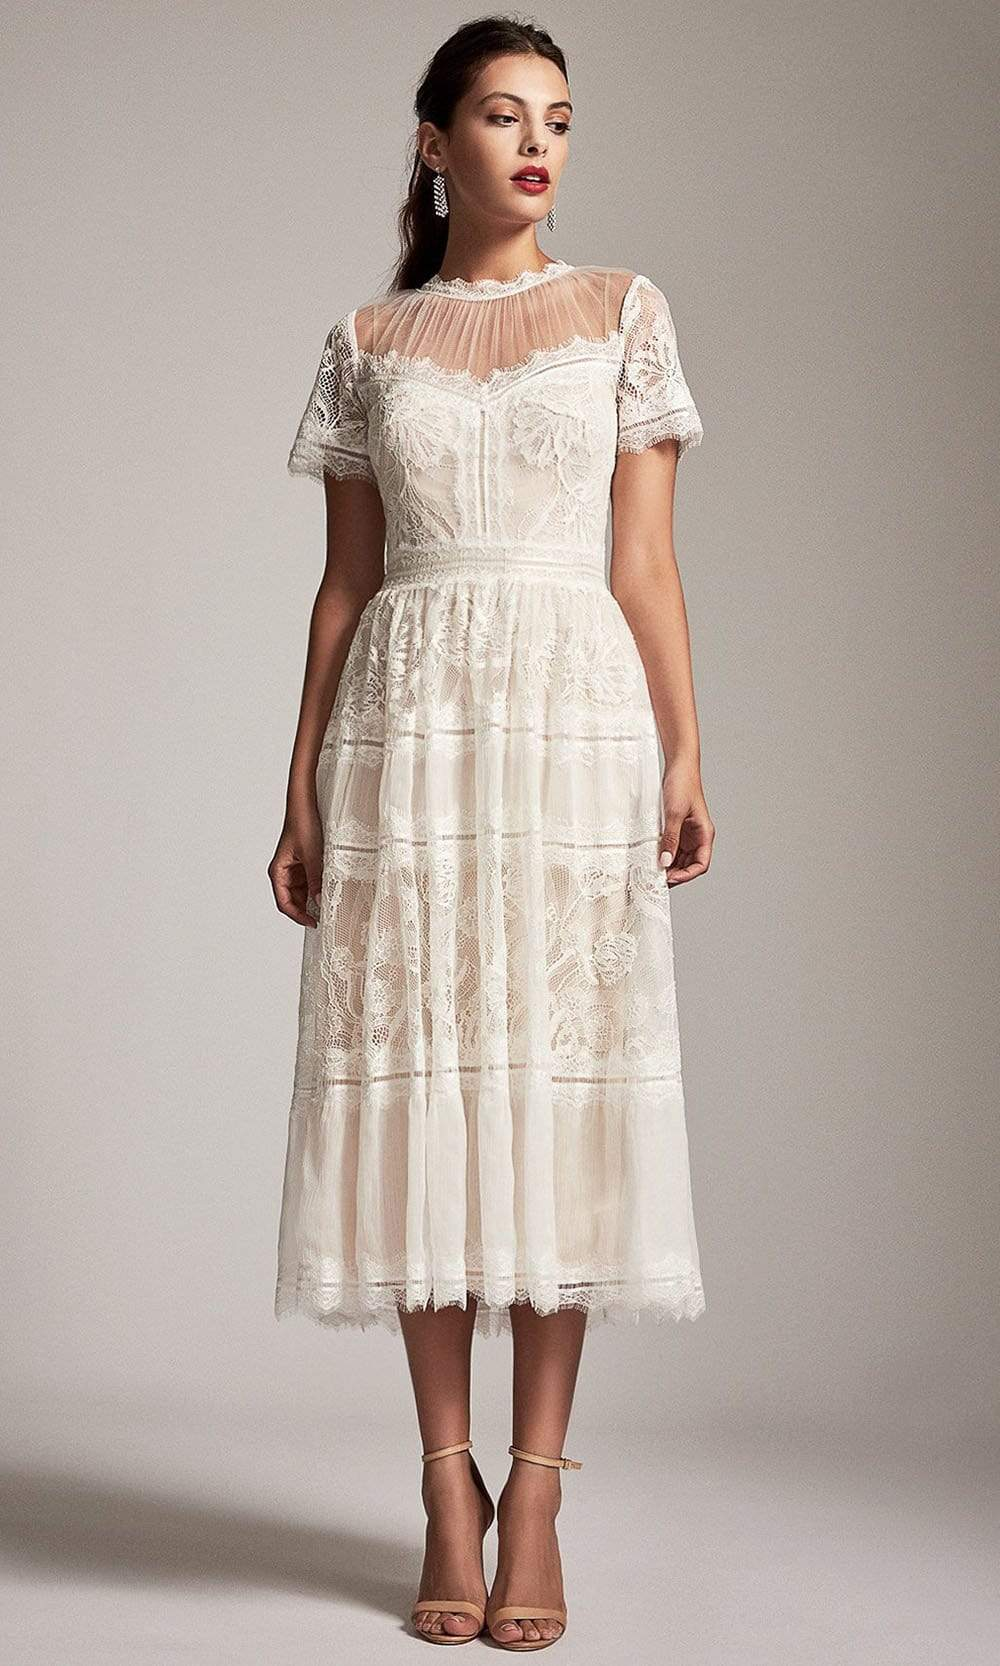 Tadashi Shoji - Lace Jewel A-Line Cocktail Dress Special Occasion Dress 0 / Ivory/Petal